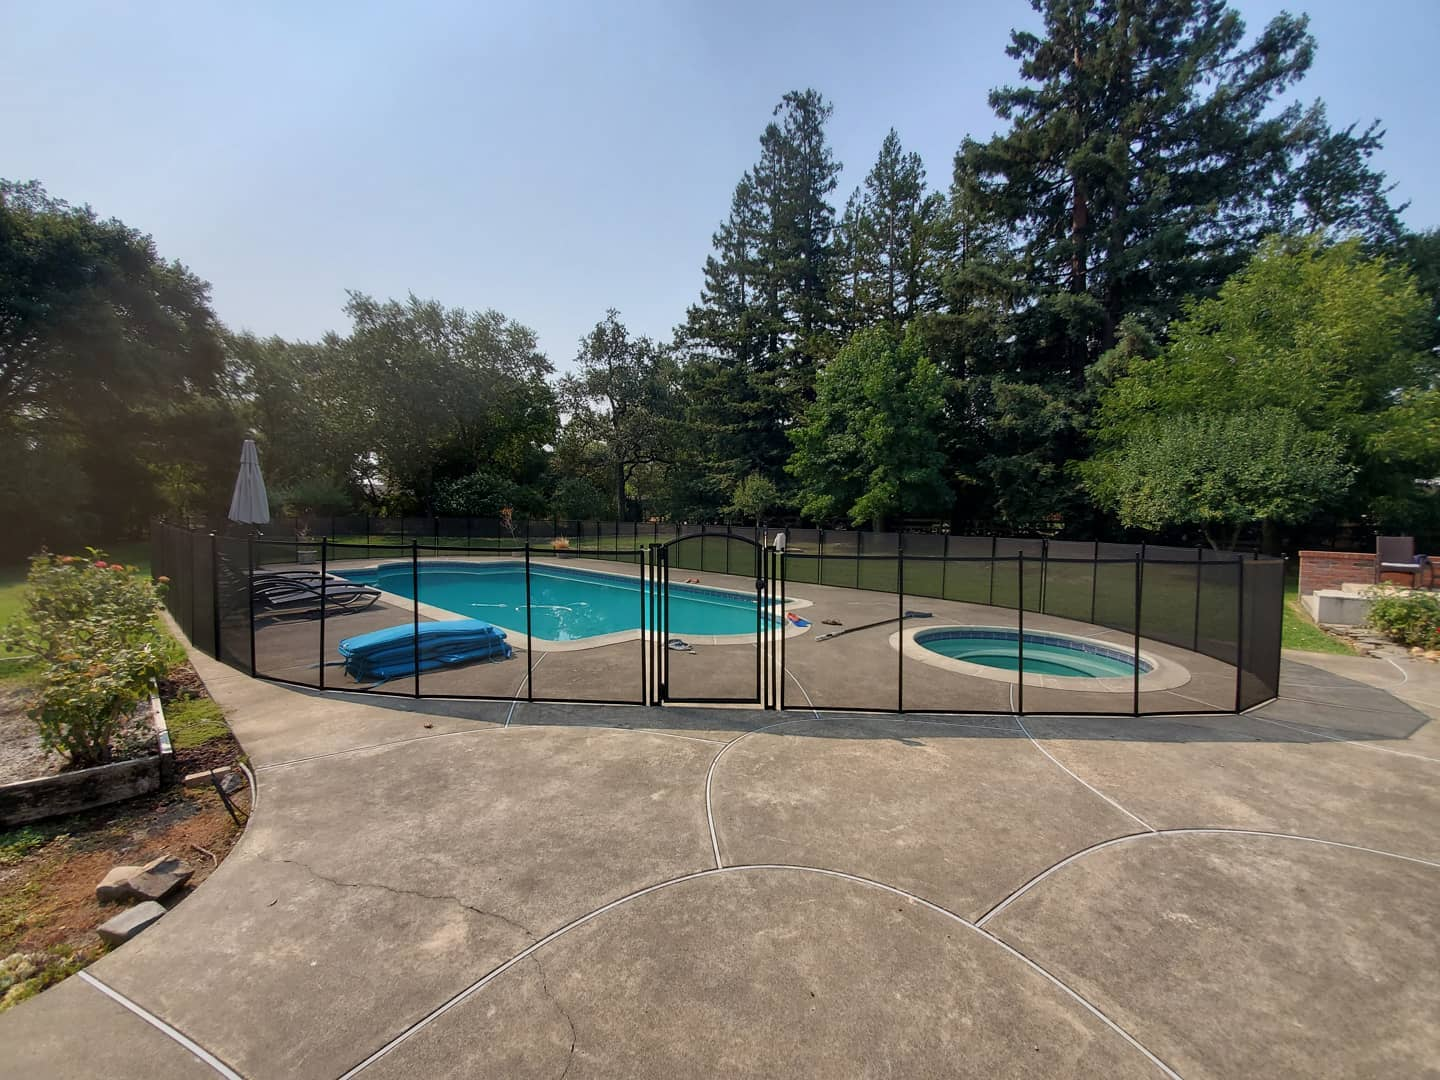 pool safety fence installed in Slidell, Louisiana